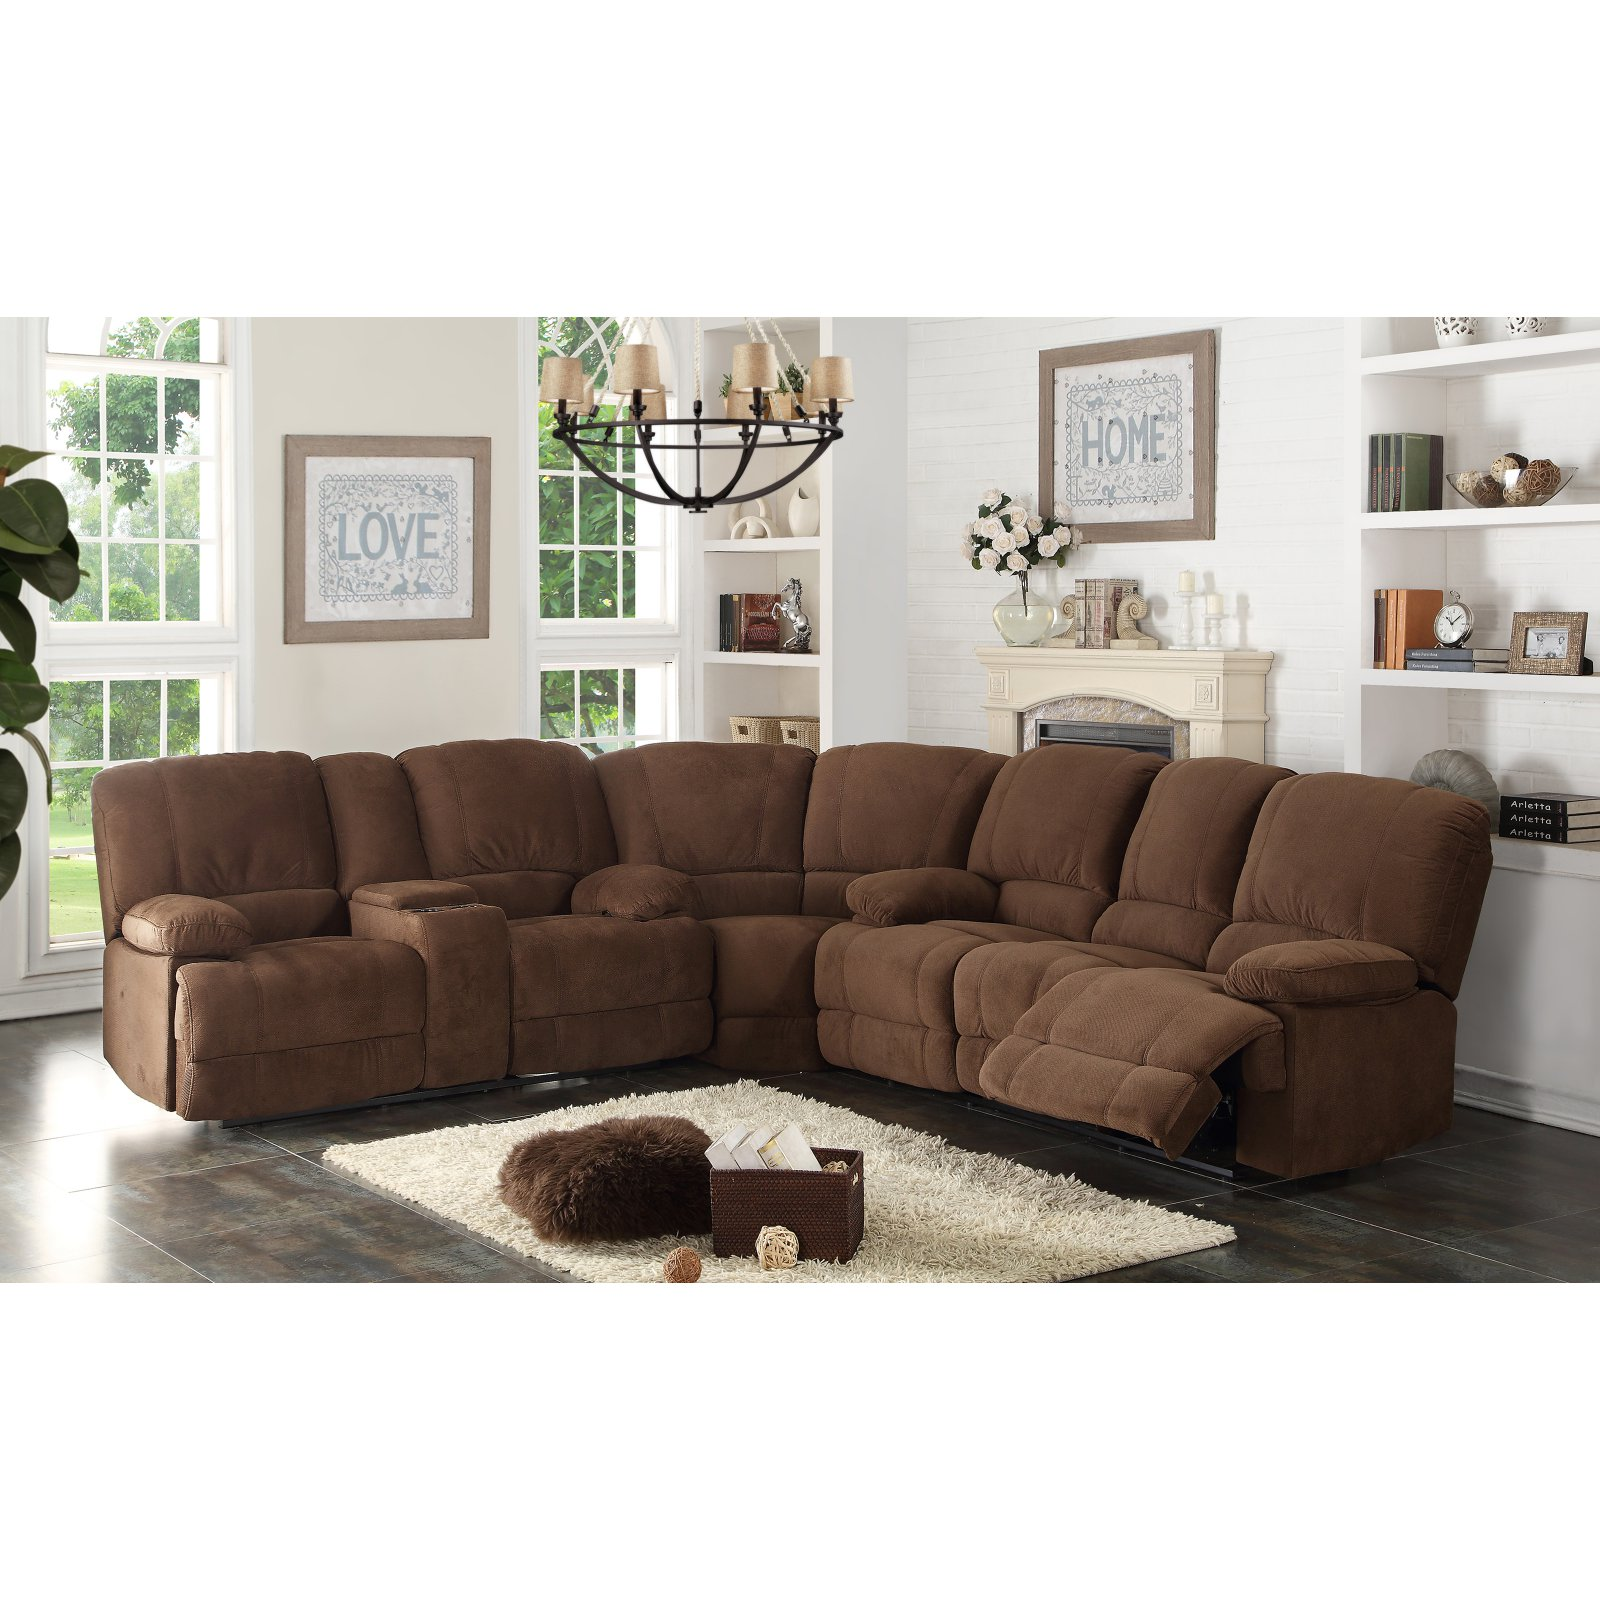 Image of AC Pacific Kevin 3 Piece Sectional Sofa Set